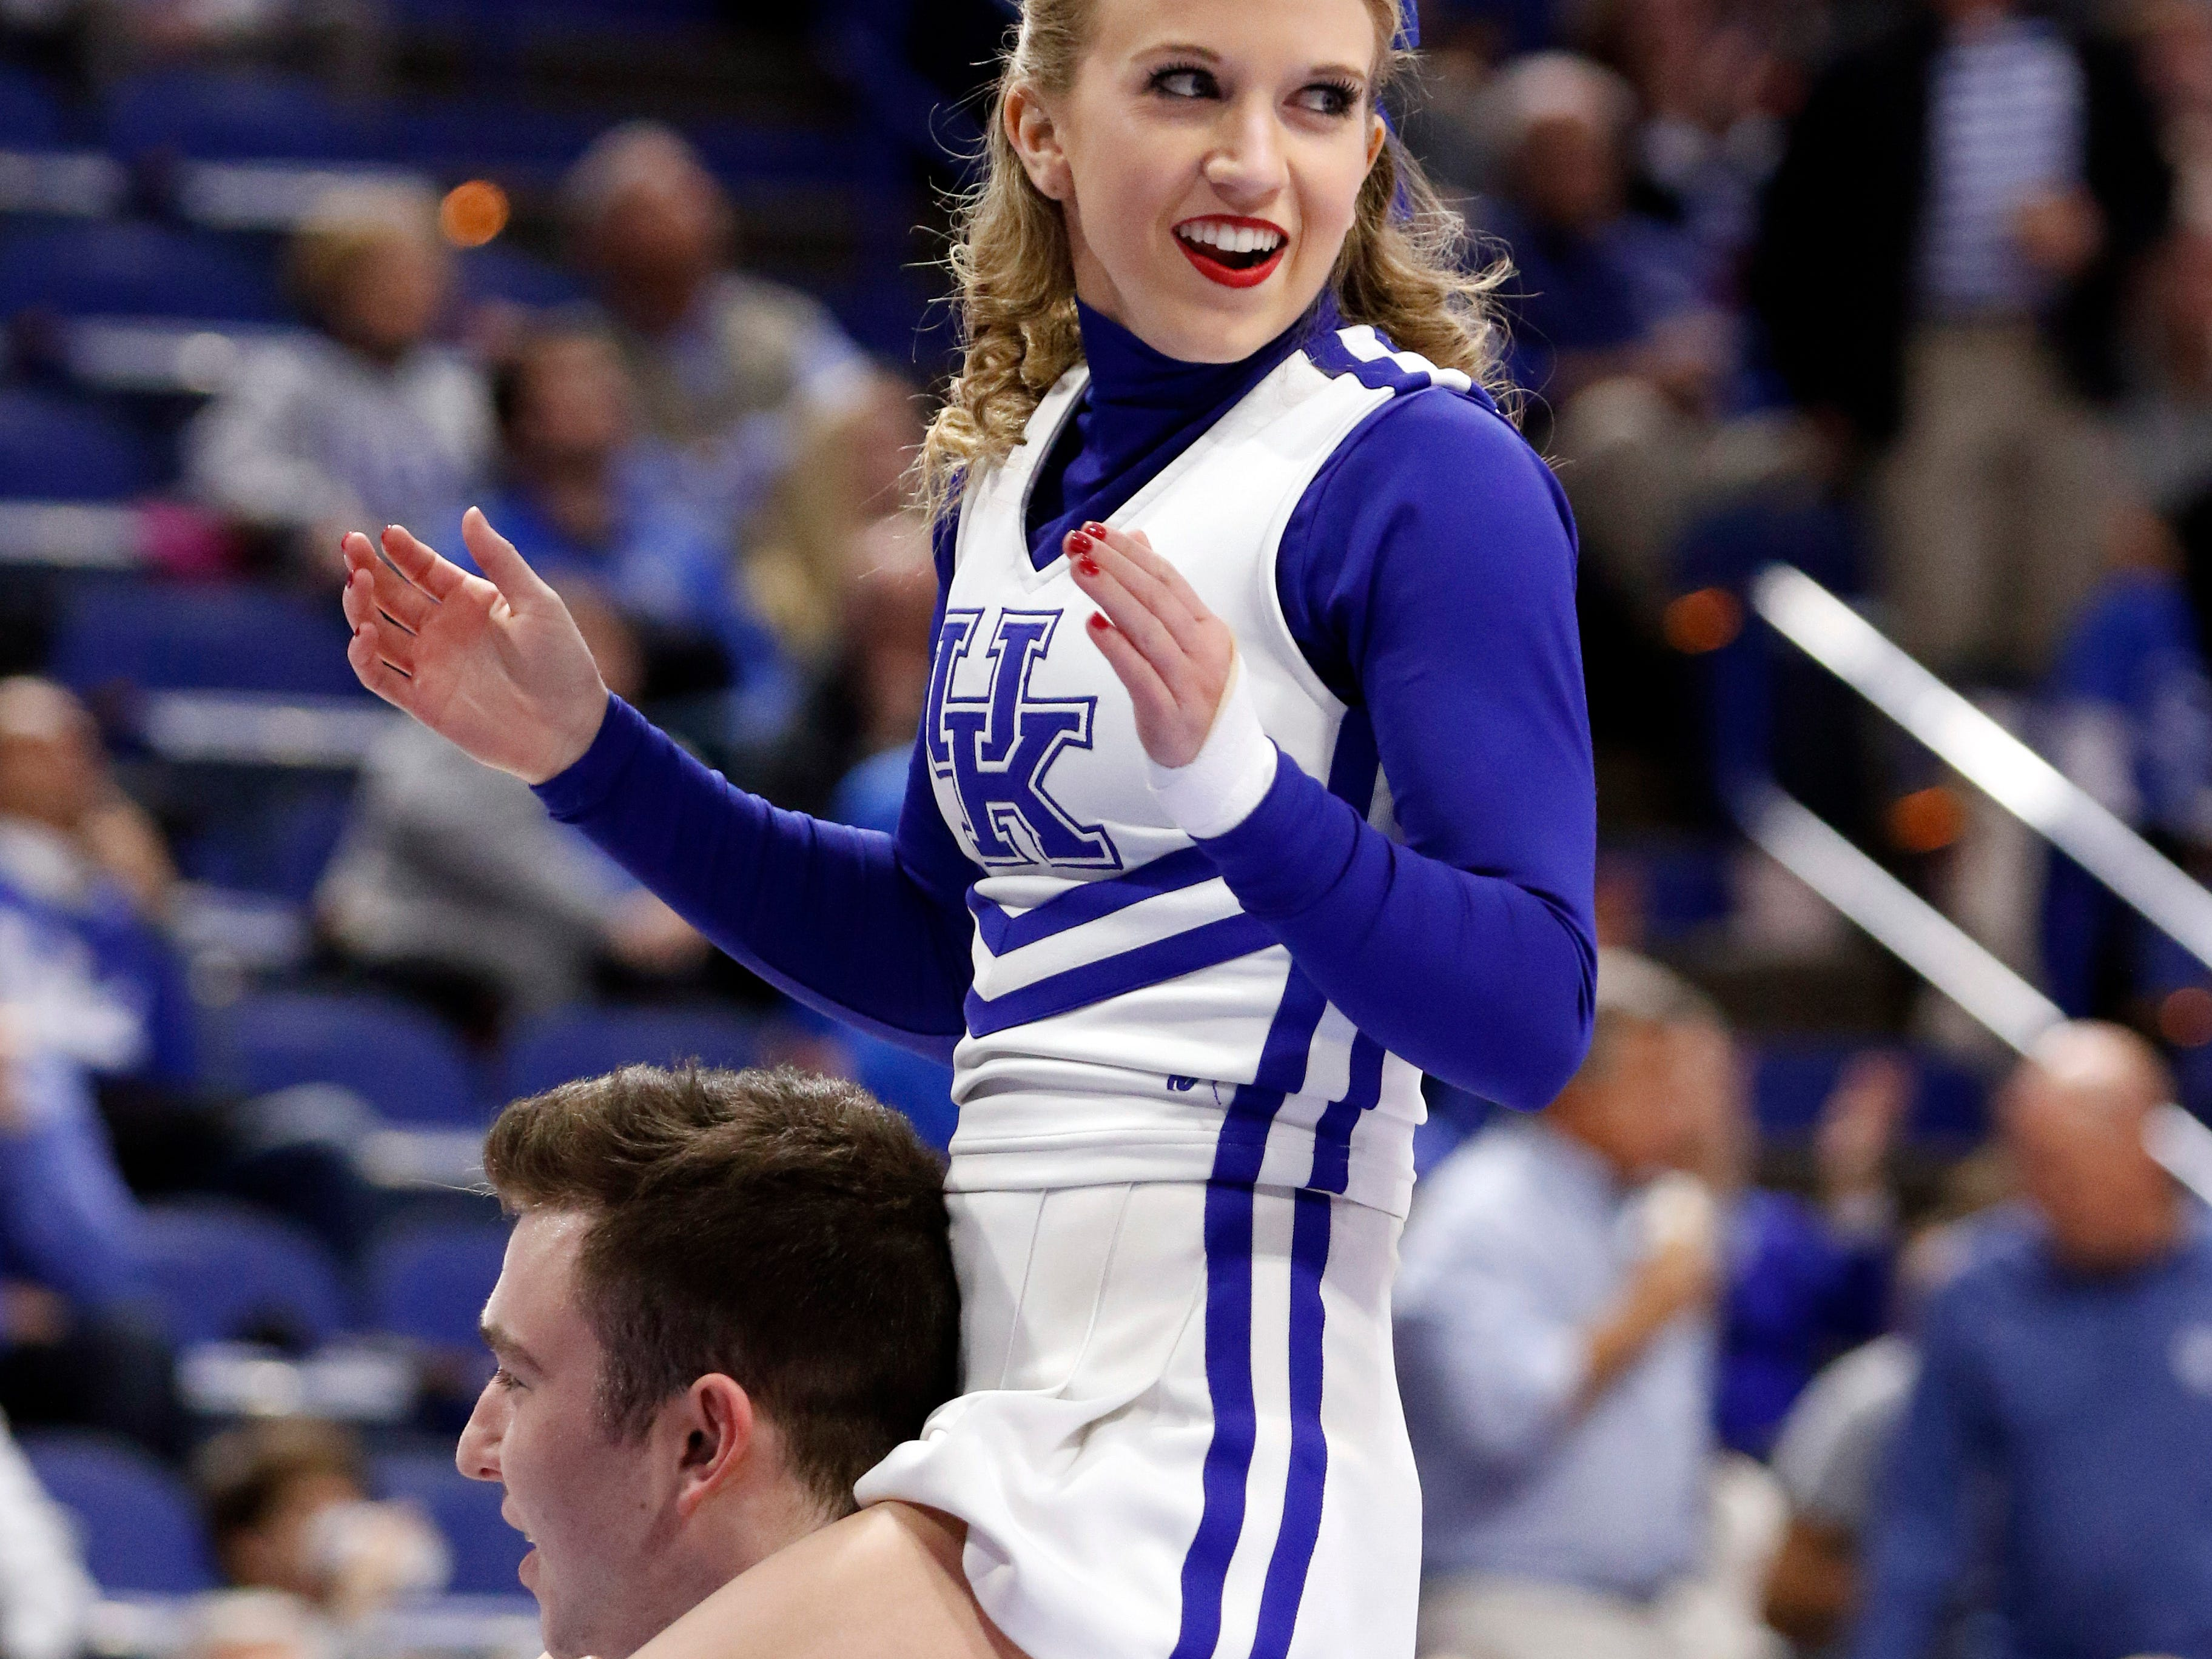 Kentucky cheerleaders perform during the second half of an NCAA college basketball game against Mississippi State, Tuesday, Jan. 23, 2018, in Lexington, Ky. Kentucky won 78-65. (AP Photo/James Crisp)